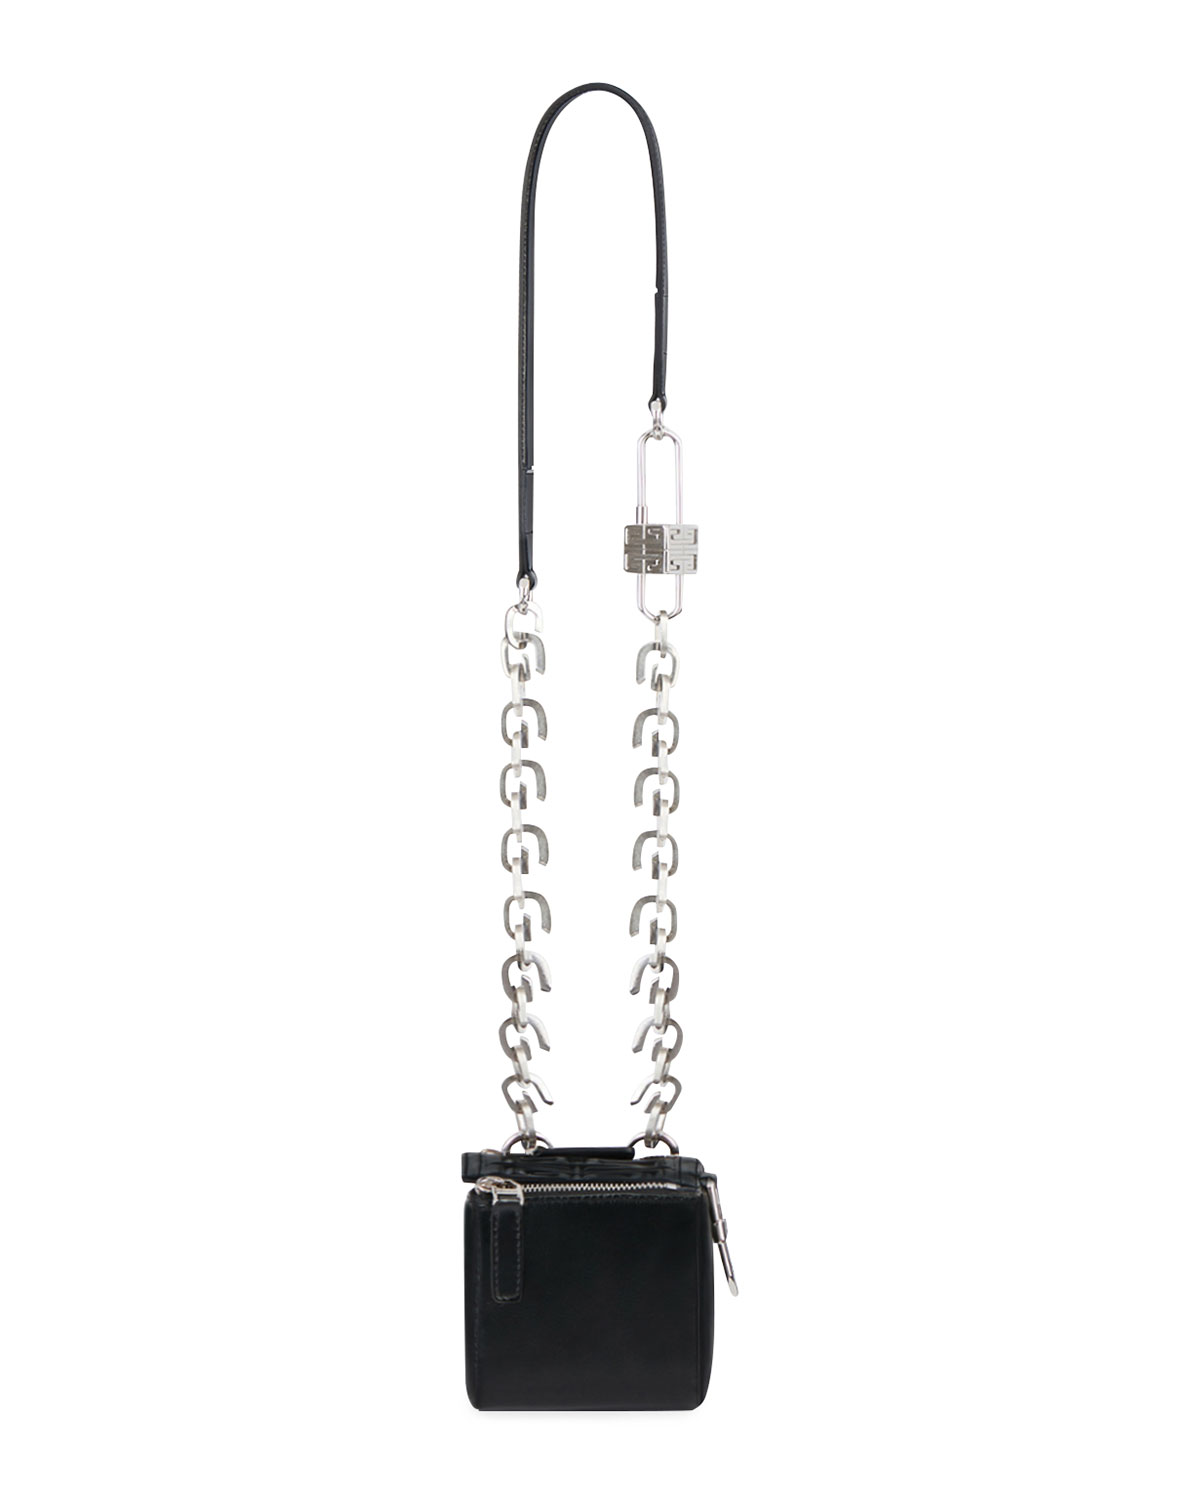 Givenchy MINI PANDORA CUBE POUCH IN SHINY LEATHER